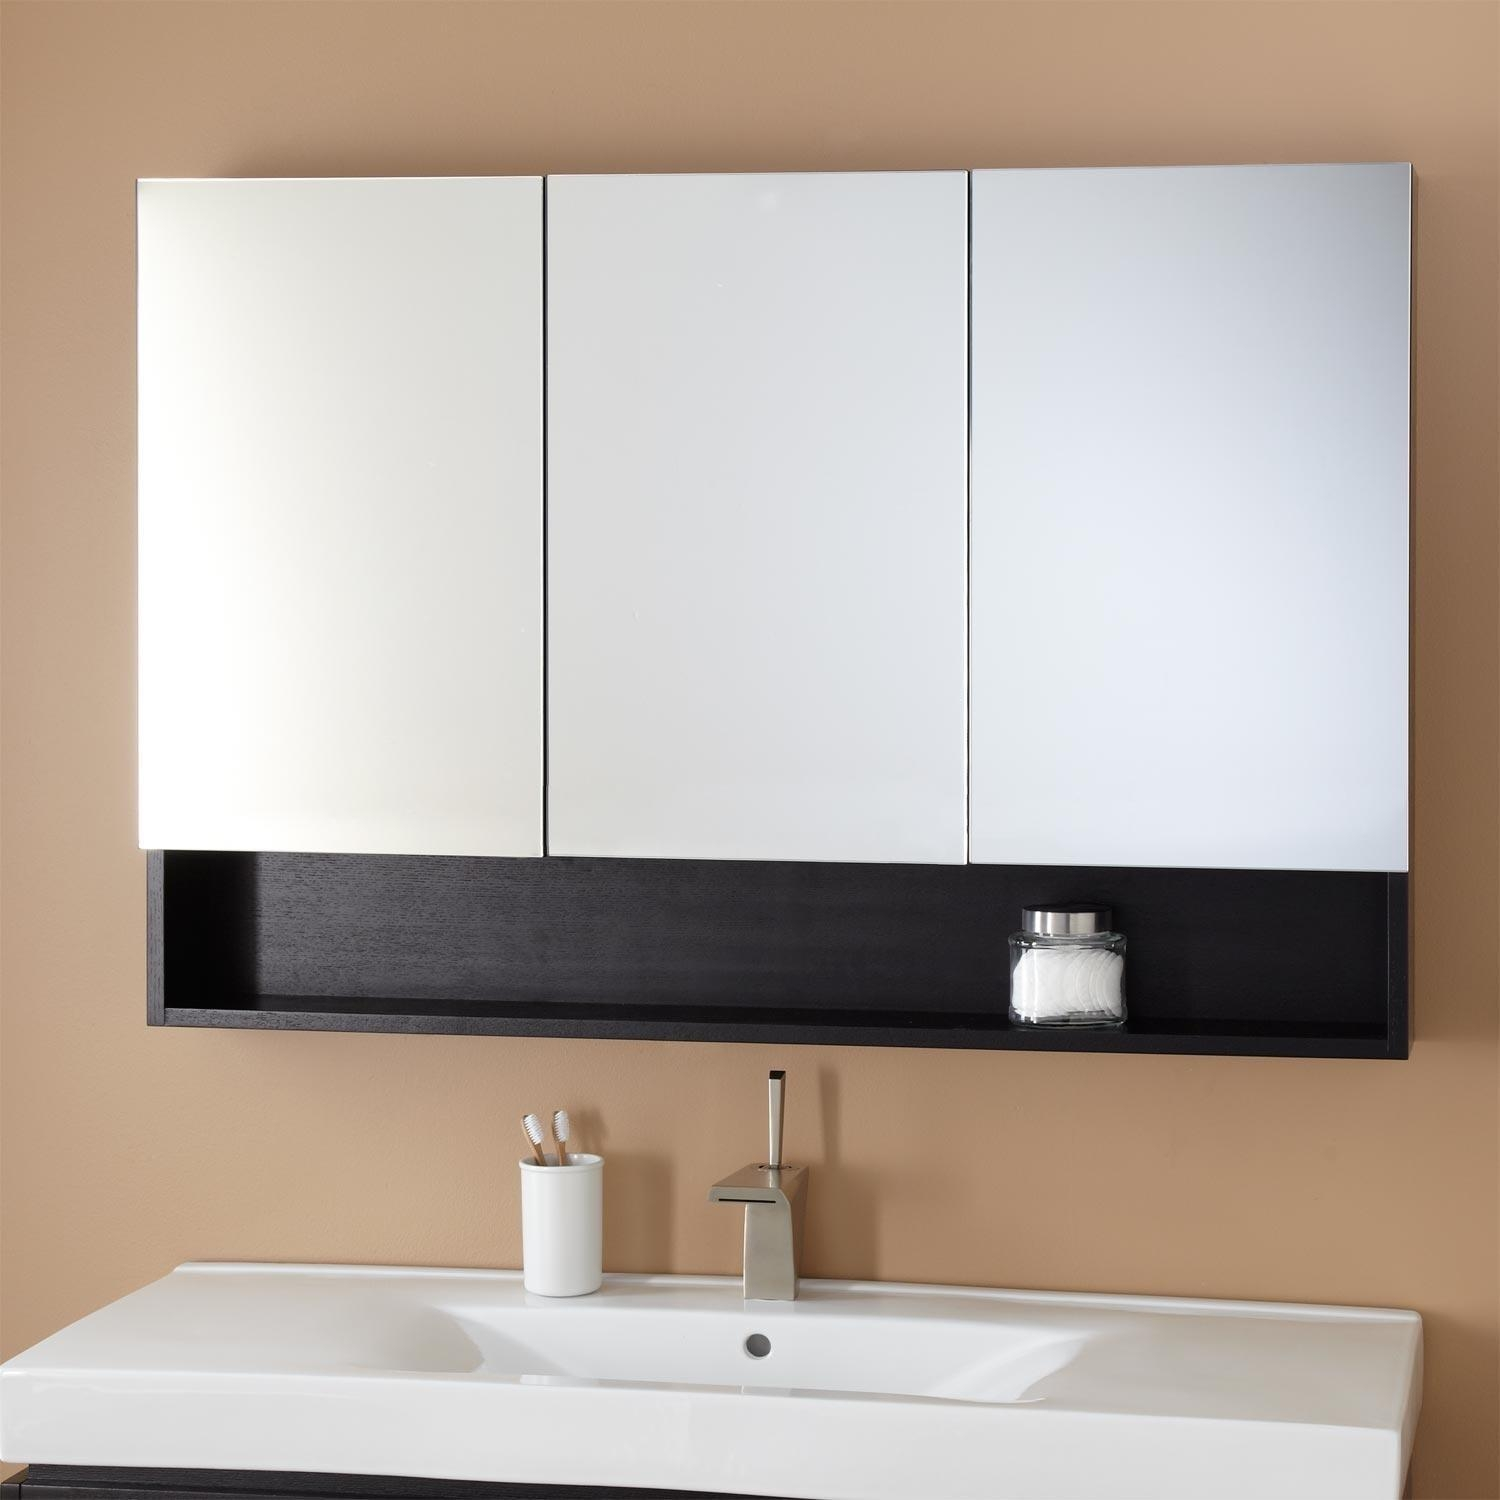 Bathroom Medicine Cabinets | Signature Hardware Regarding 3 Door Medicine Cabinets With Mirrors (Image 8 of 20)